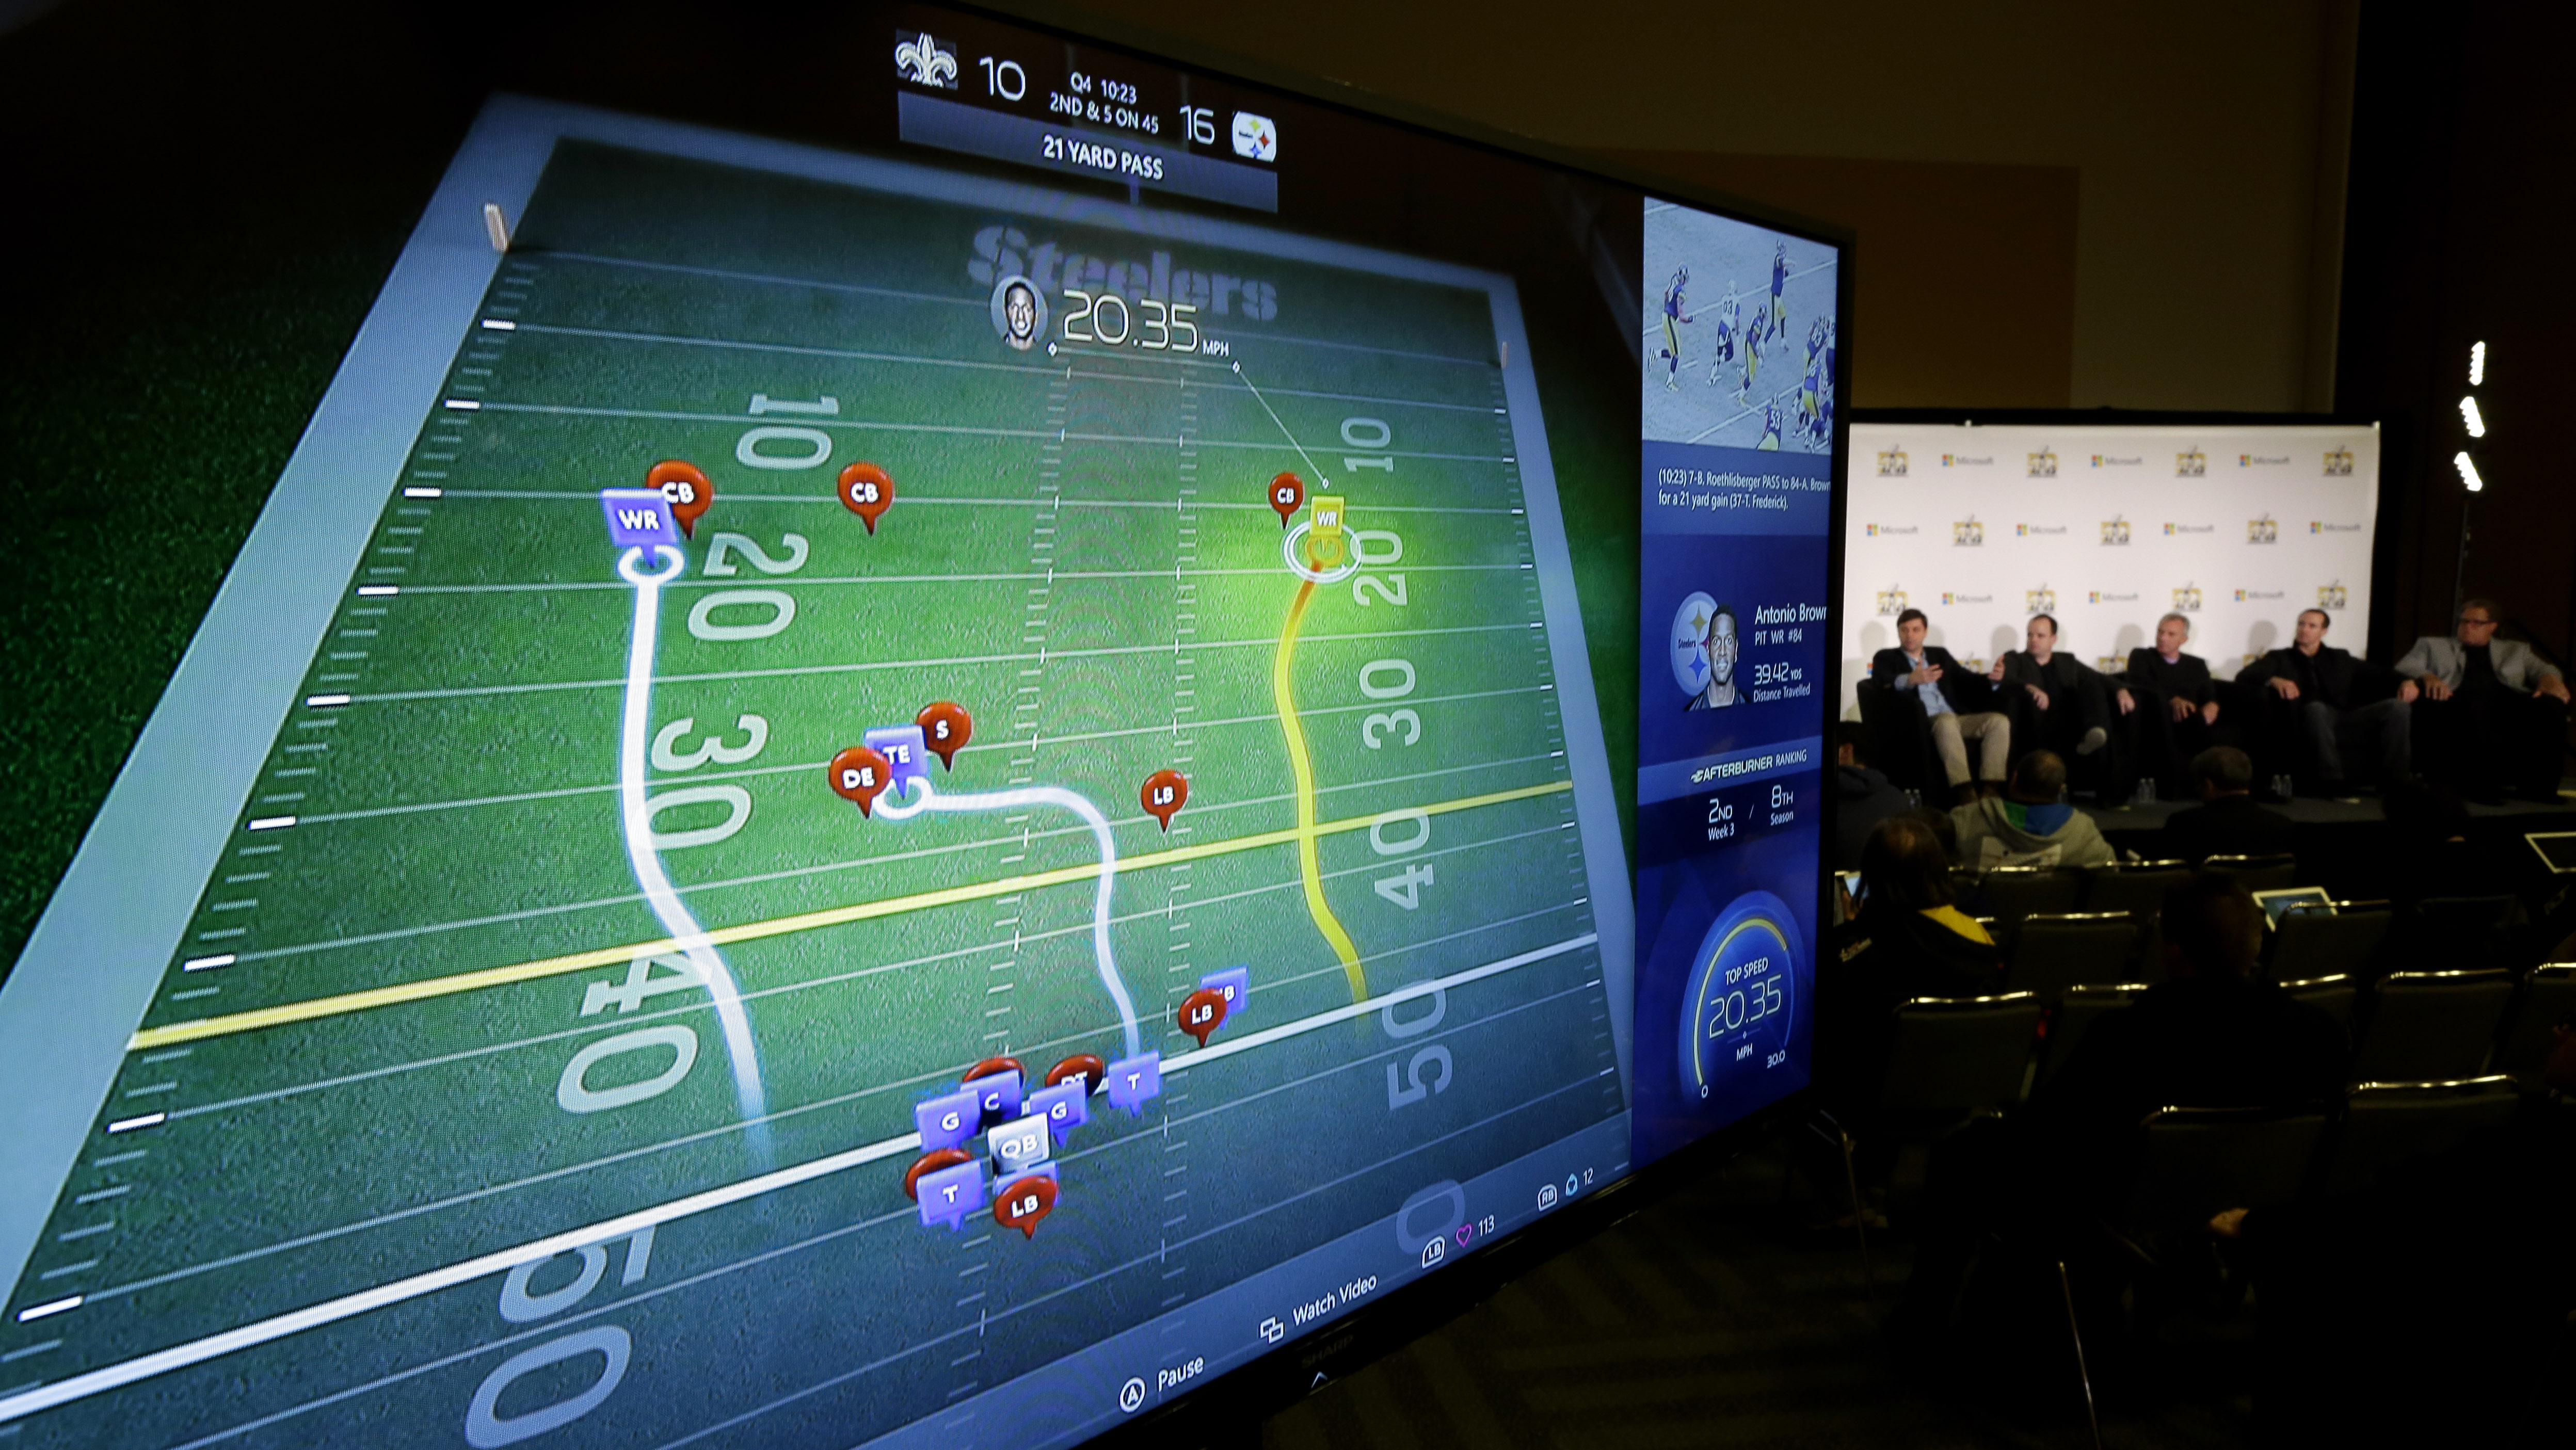 A monitor shows a technology idea as participants speak during a news conference about the role of technology in the NFL Tuesday, Feb. 2, 2016, in San Francisco. With the 50th Super Bowl days away, the NFL is looking toward the future and how technology c